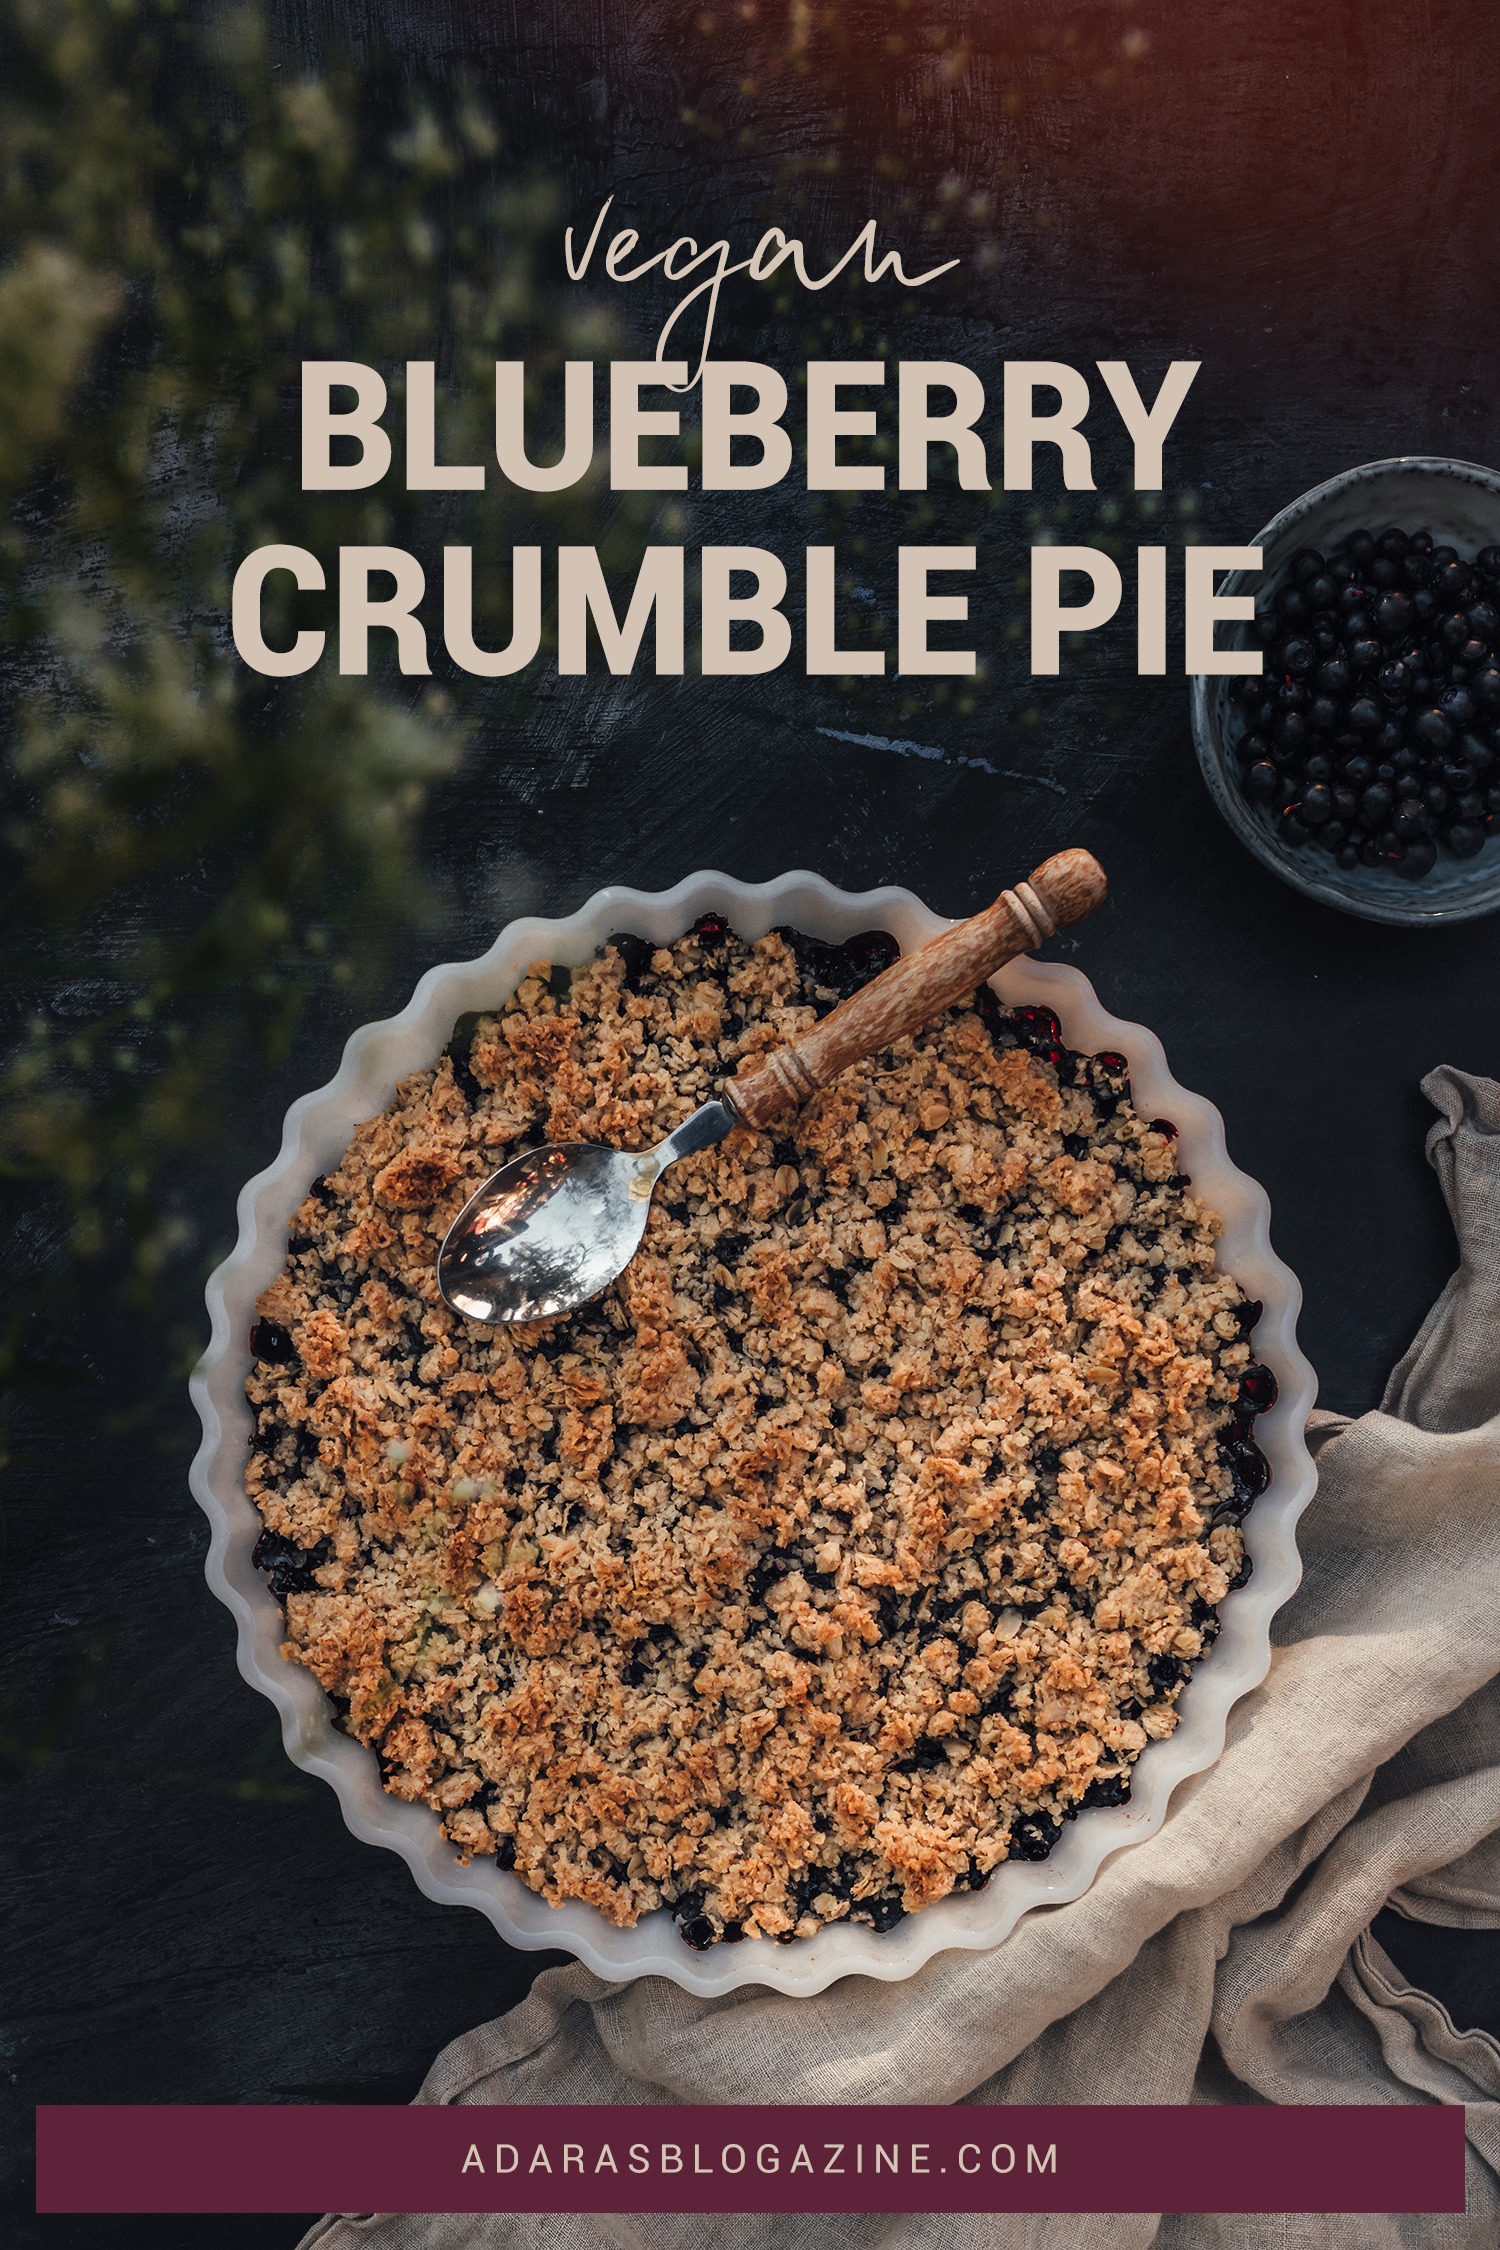 Recipe: Vegan Blueberry Crumble Pie